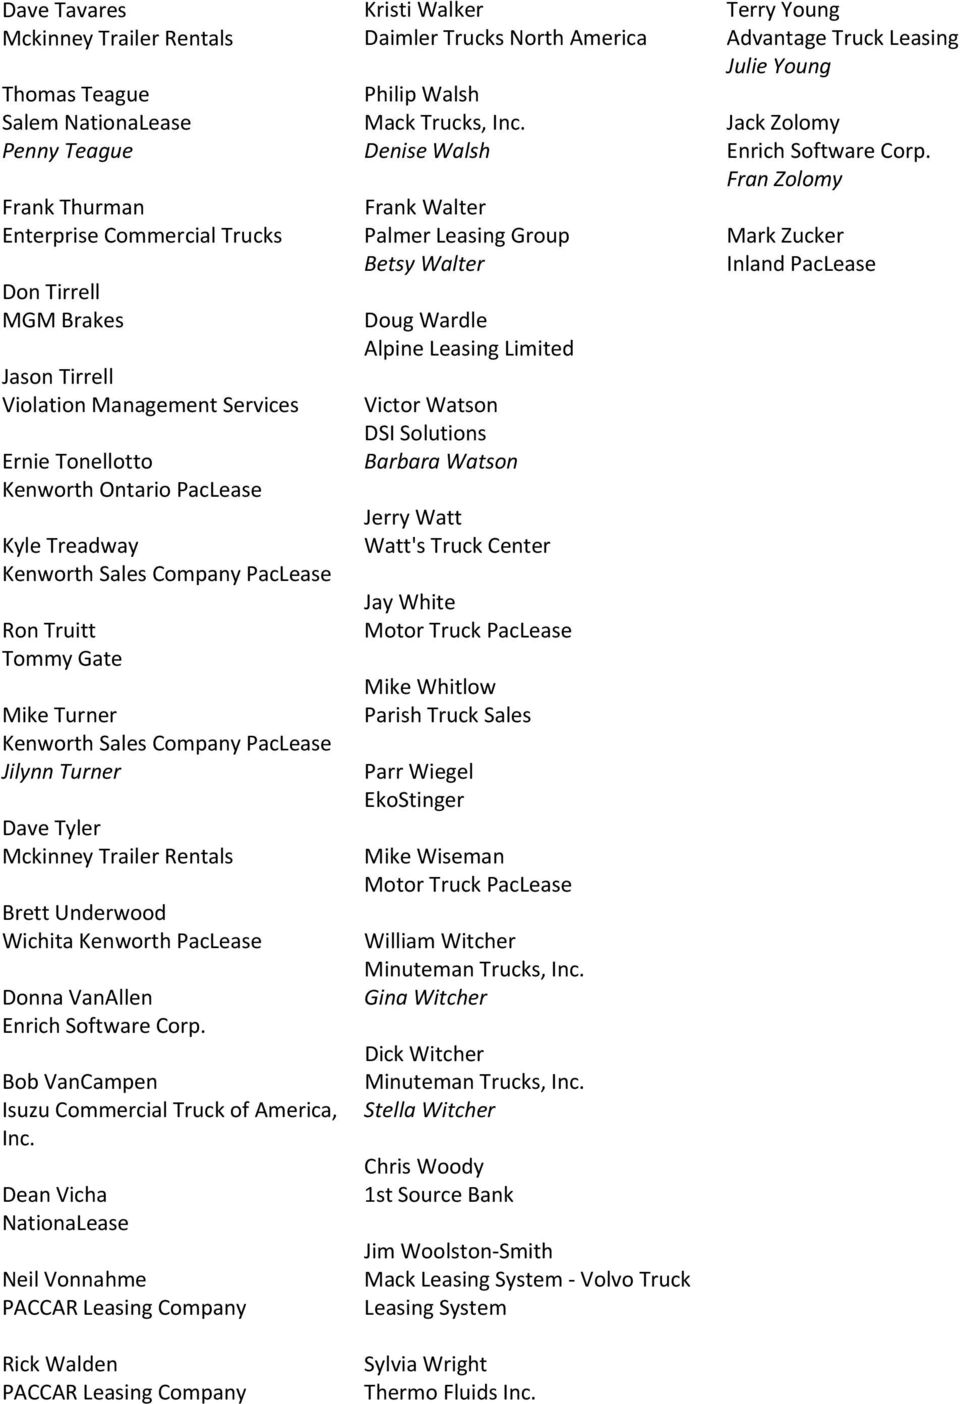 Attendees For Trala 2014 Annual Meeting As Of 02 25 Pdf